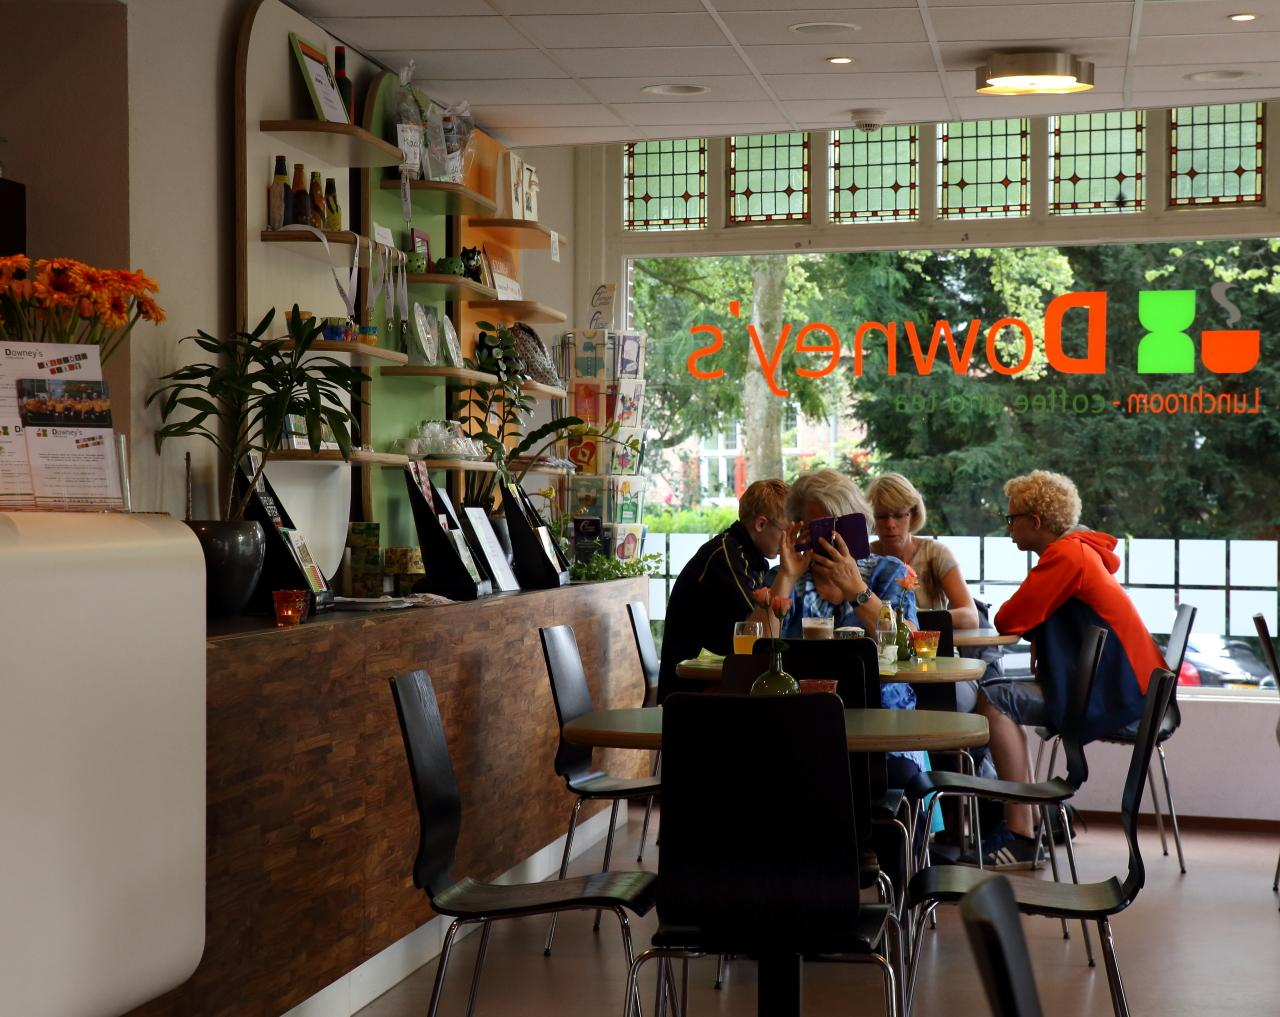 Foto Downey's Coffee and Tea in Amersfoort, Eten & drinken, Koffie, thee & gebak, Lunchen - #3